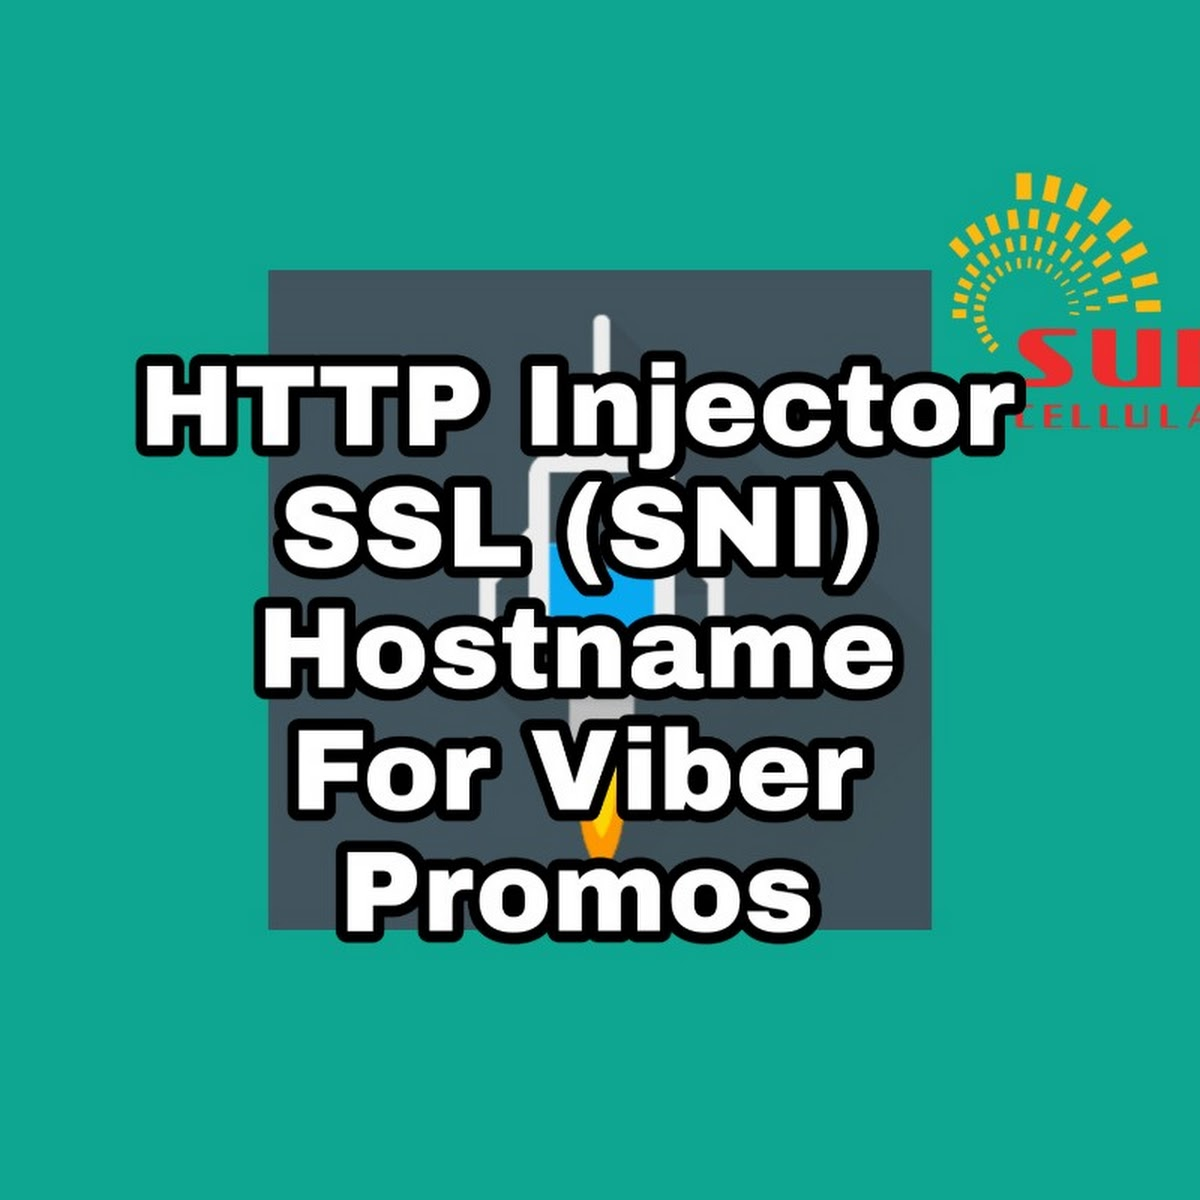 HTTP Injector: SSL SNI Hostname For Sun Viber Promos